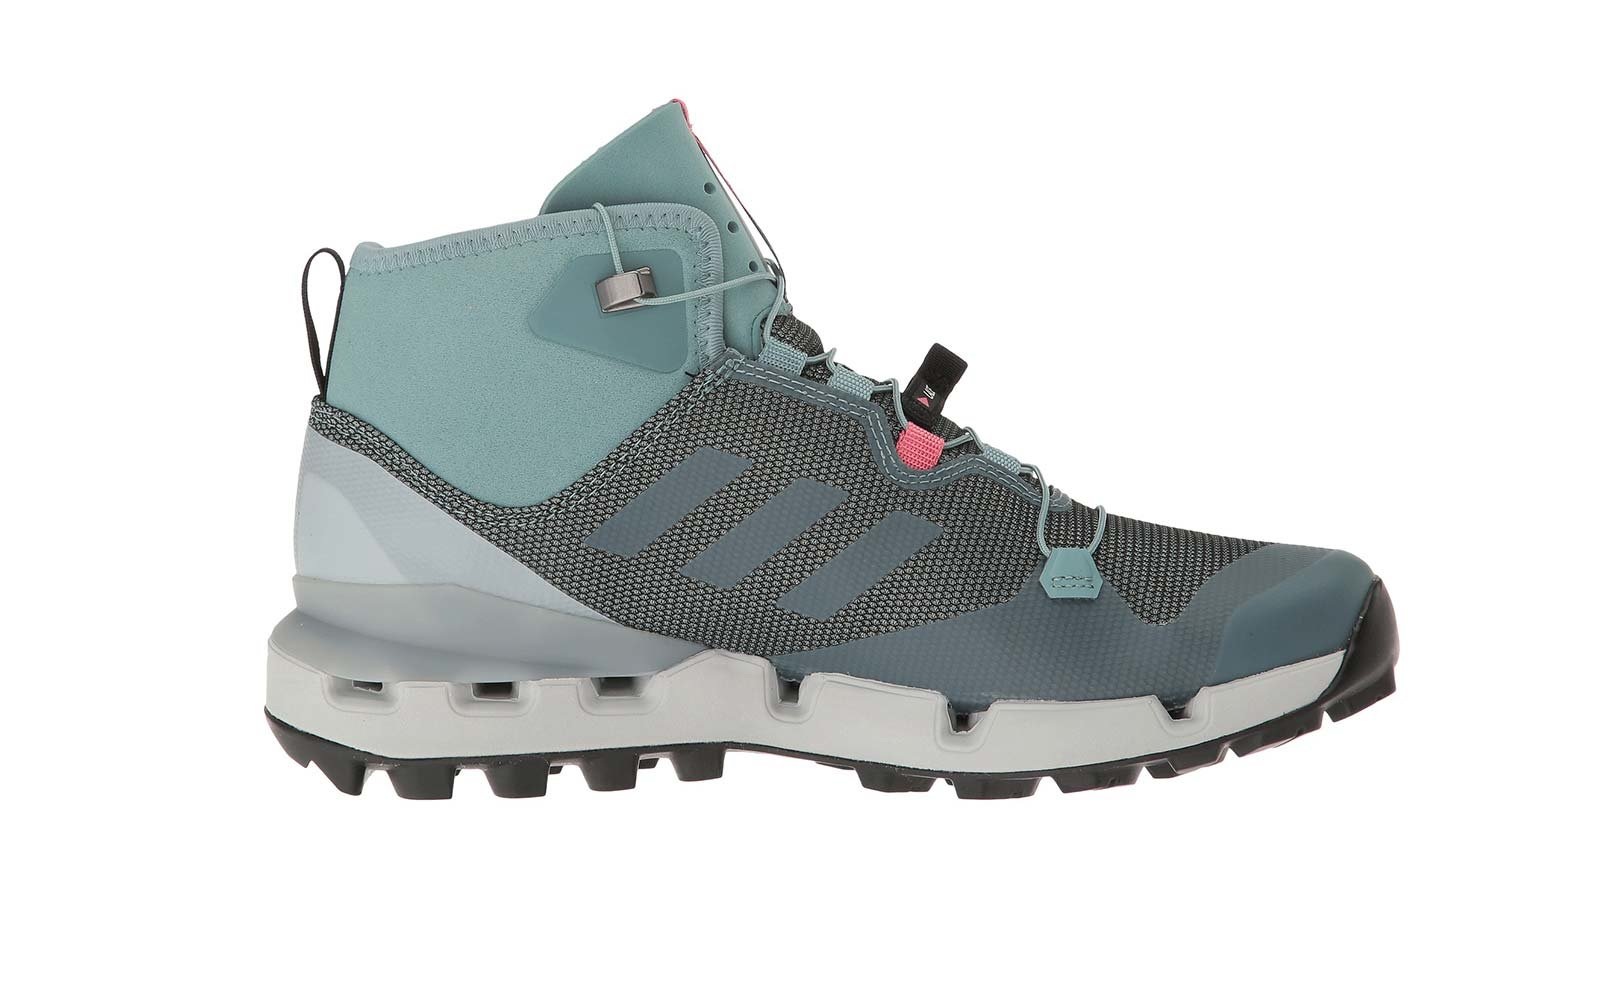 Adidas Female Hiking Boots